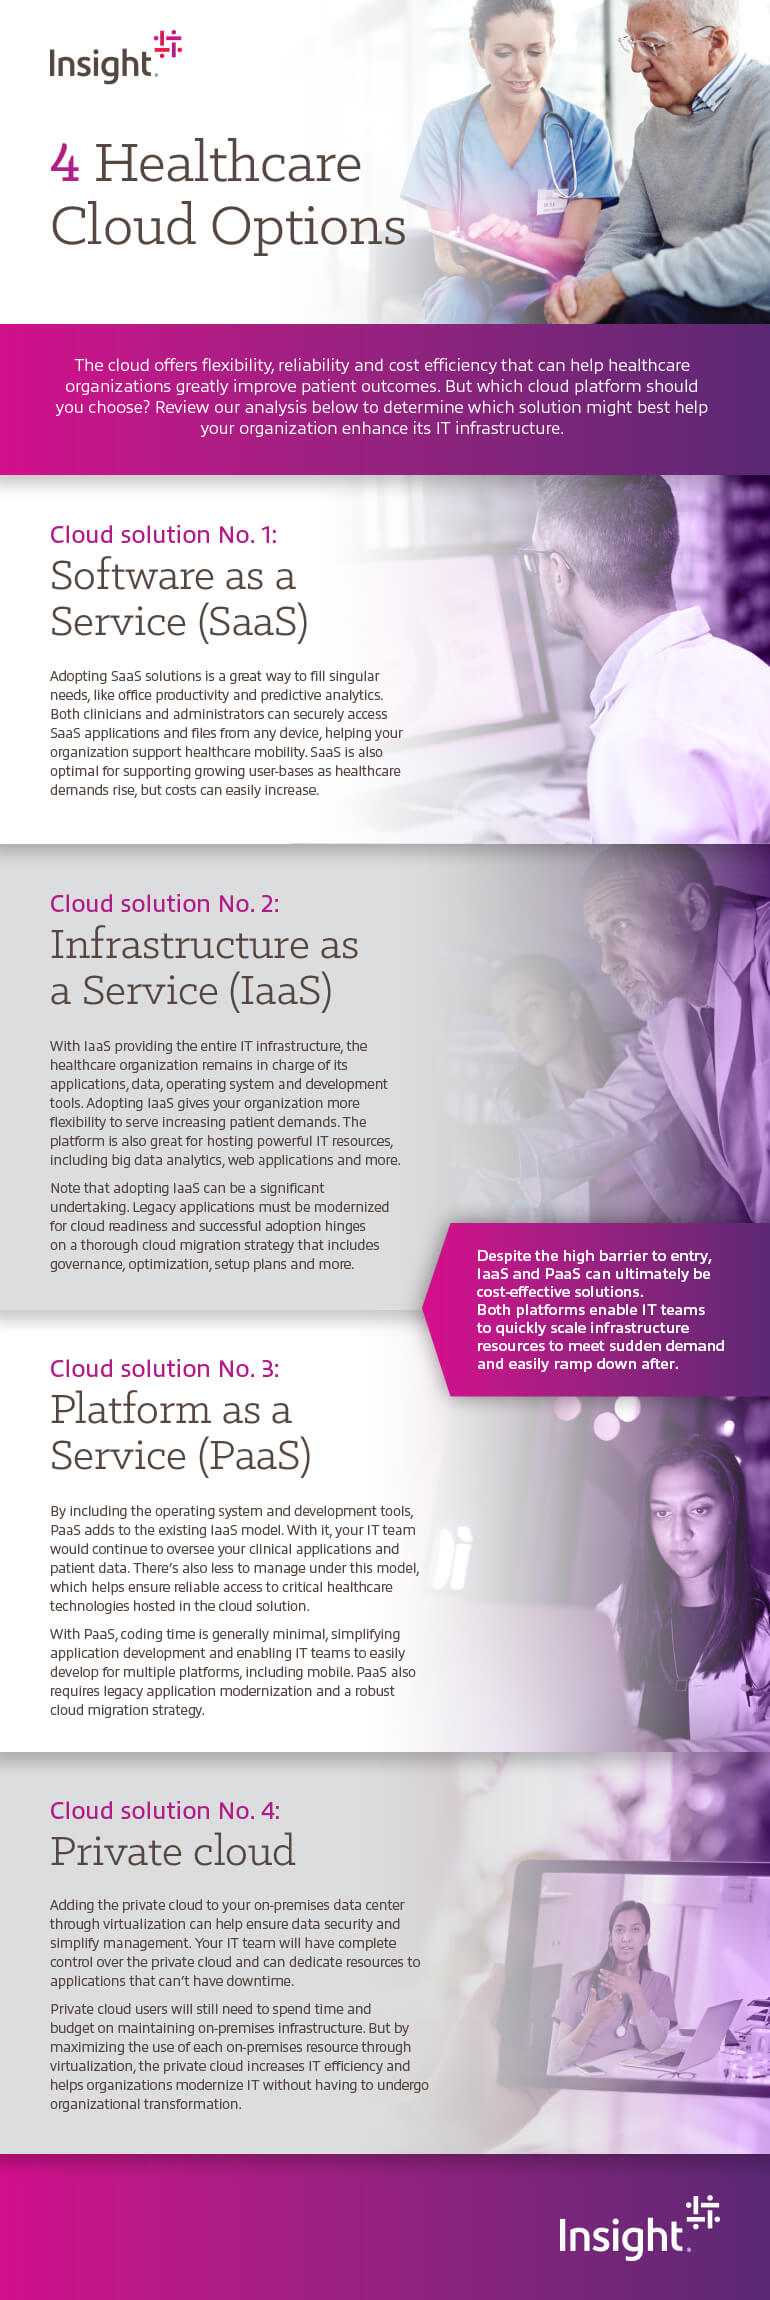 Evaluating Four Healthcare Cloud Options infographic as transcribed below